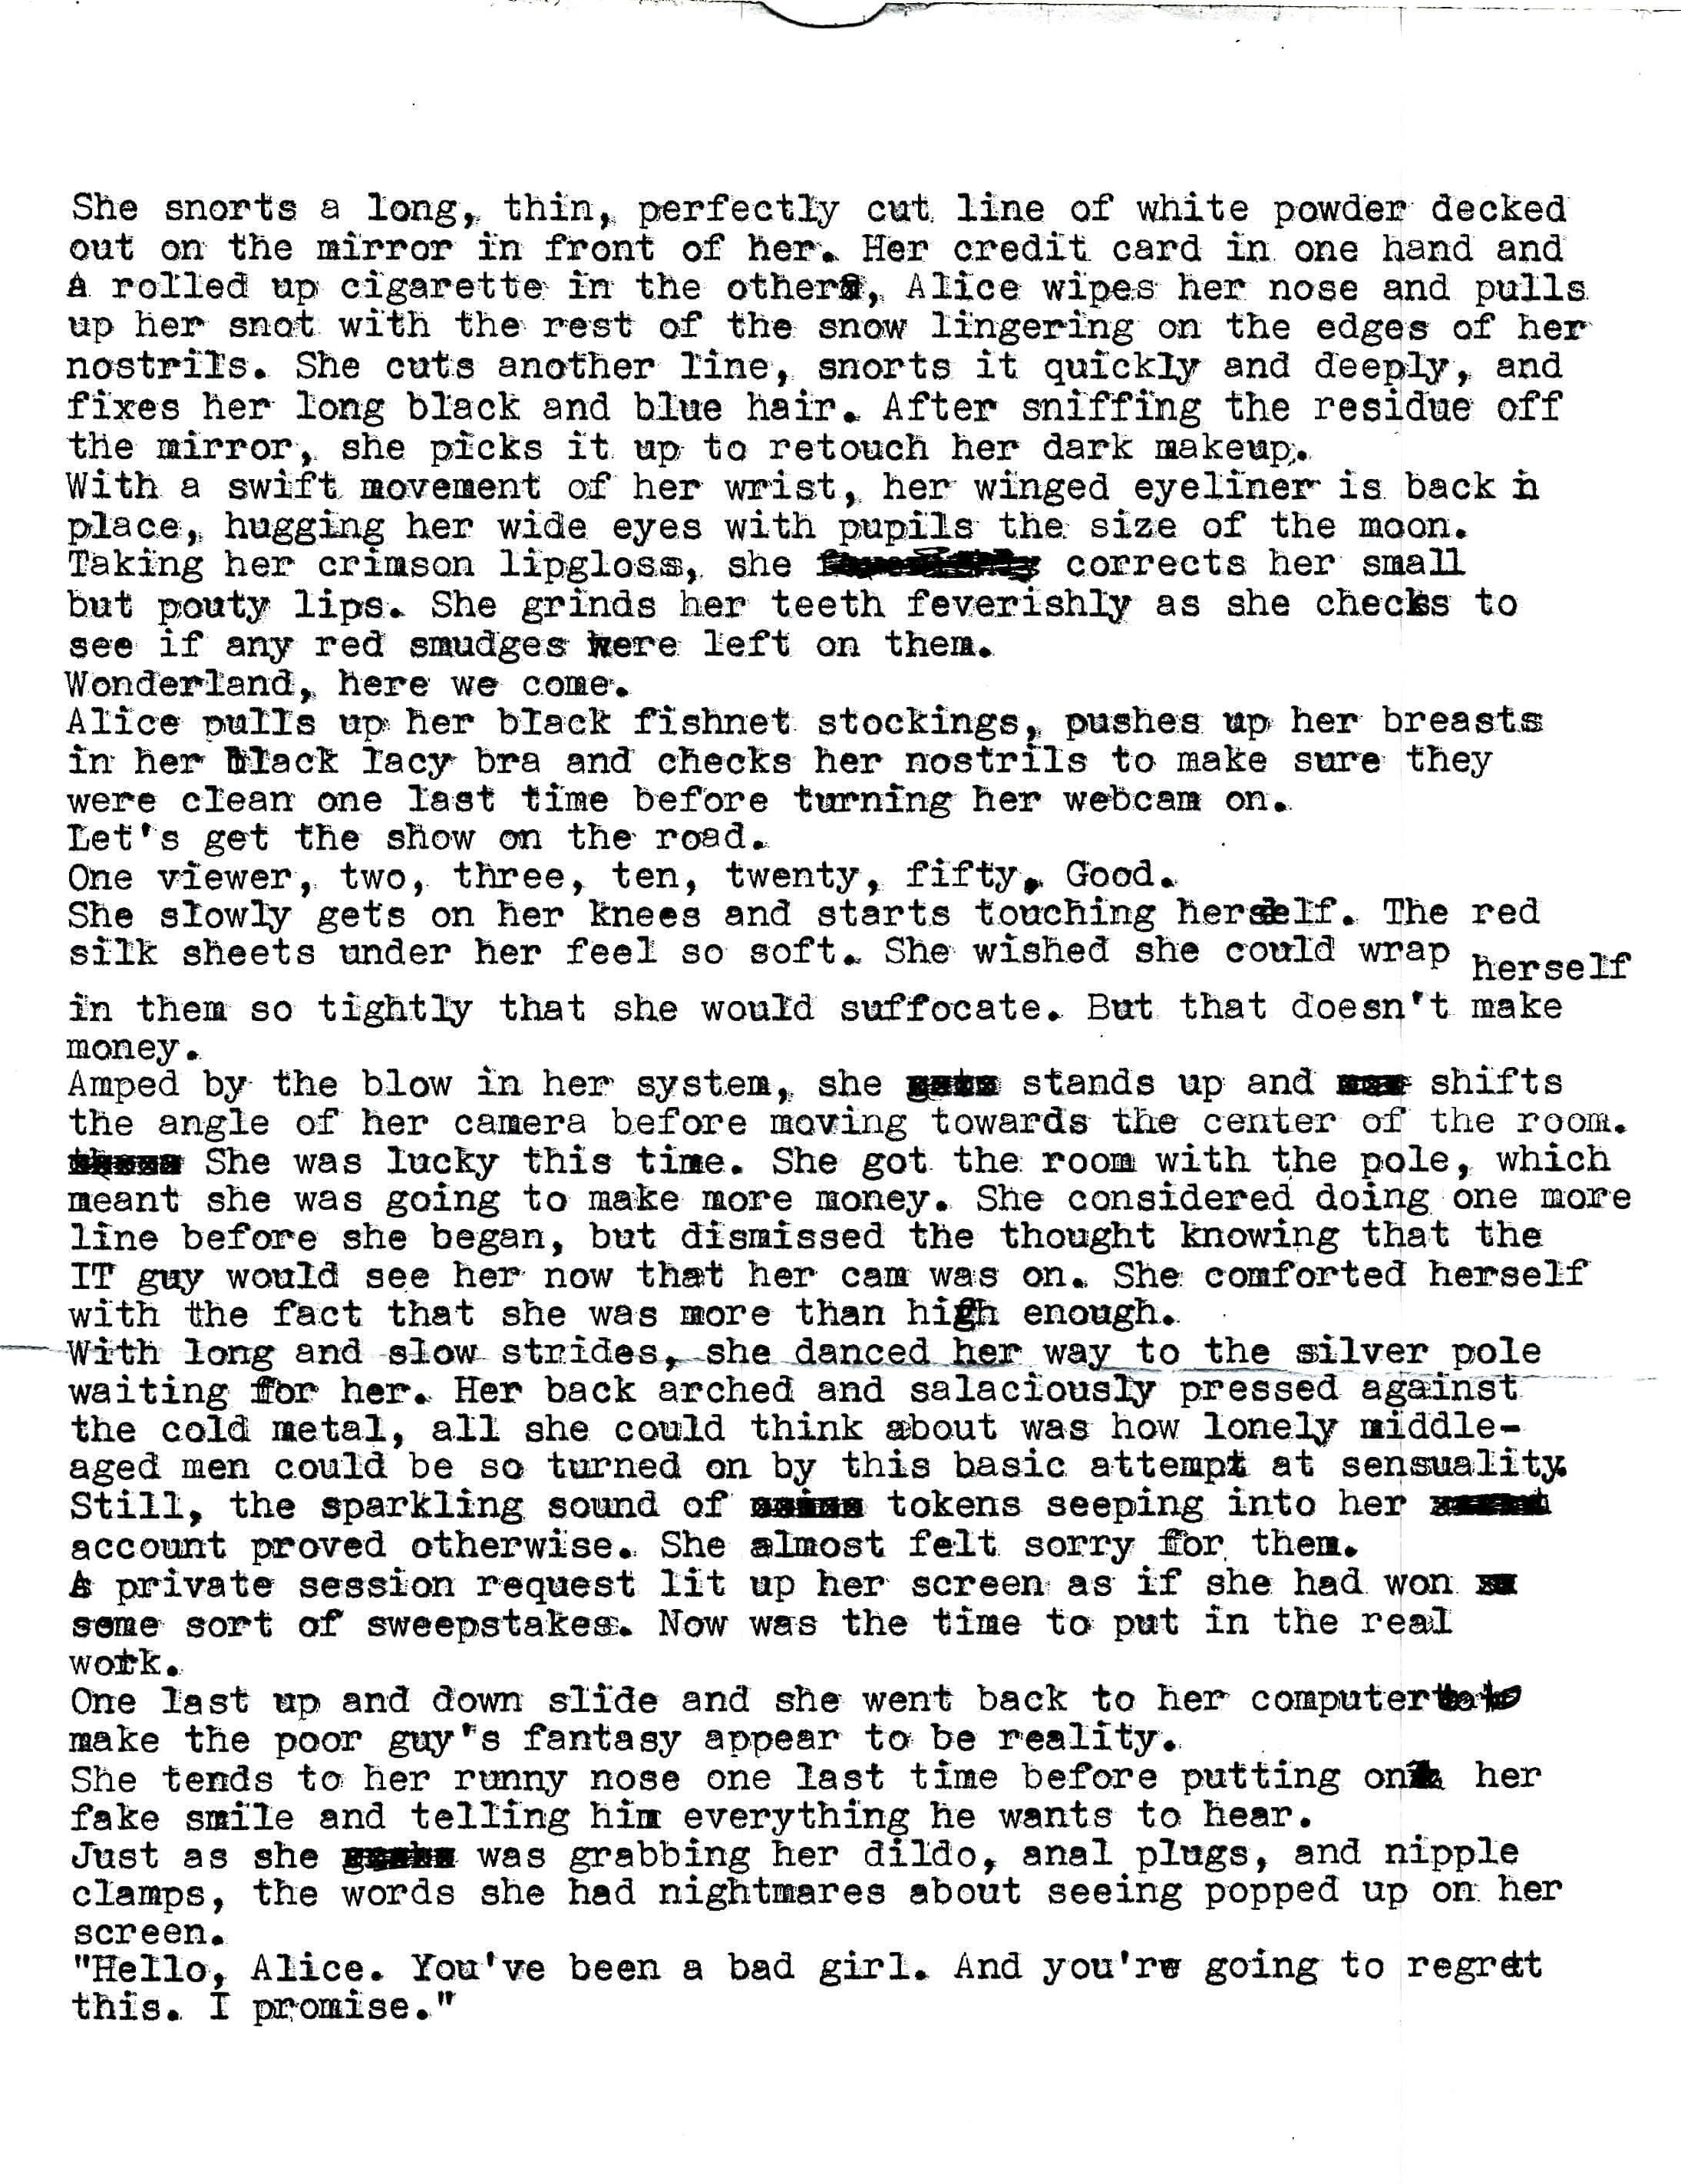 alice in nightmareland typewriter short story